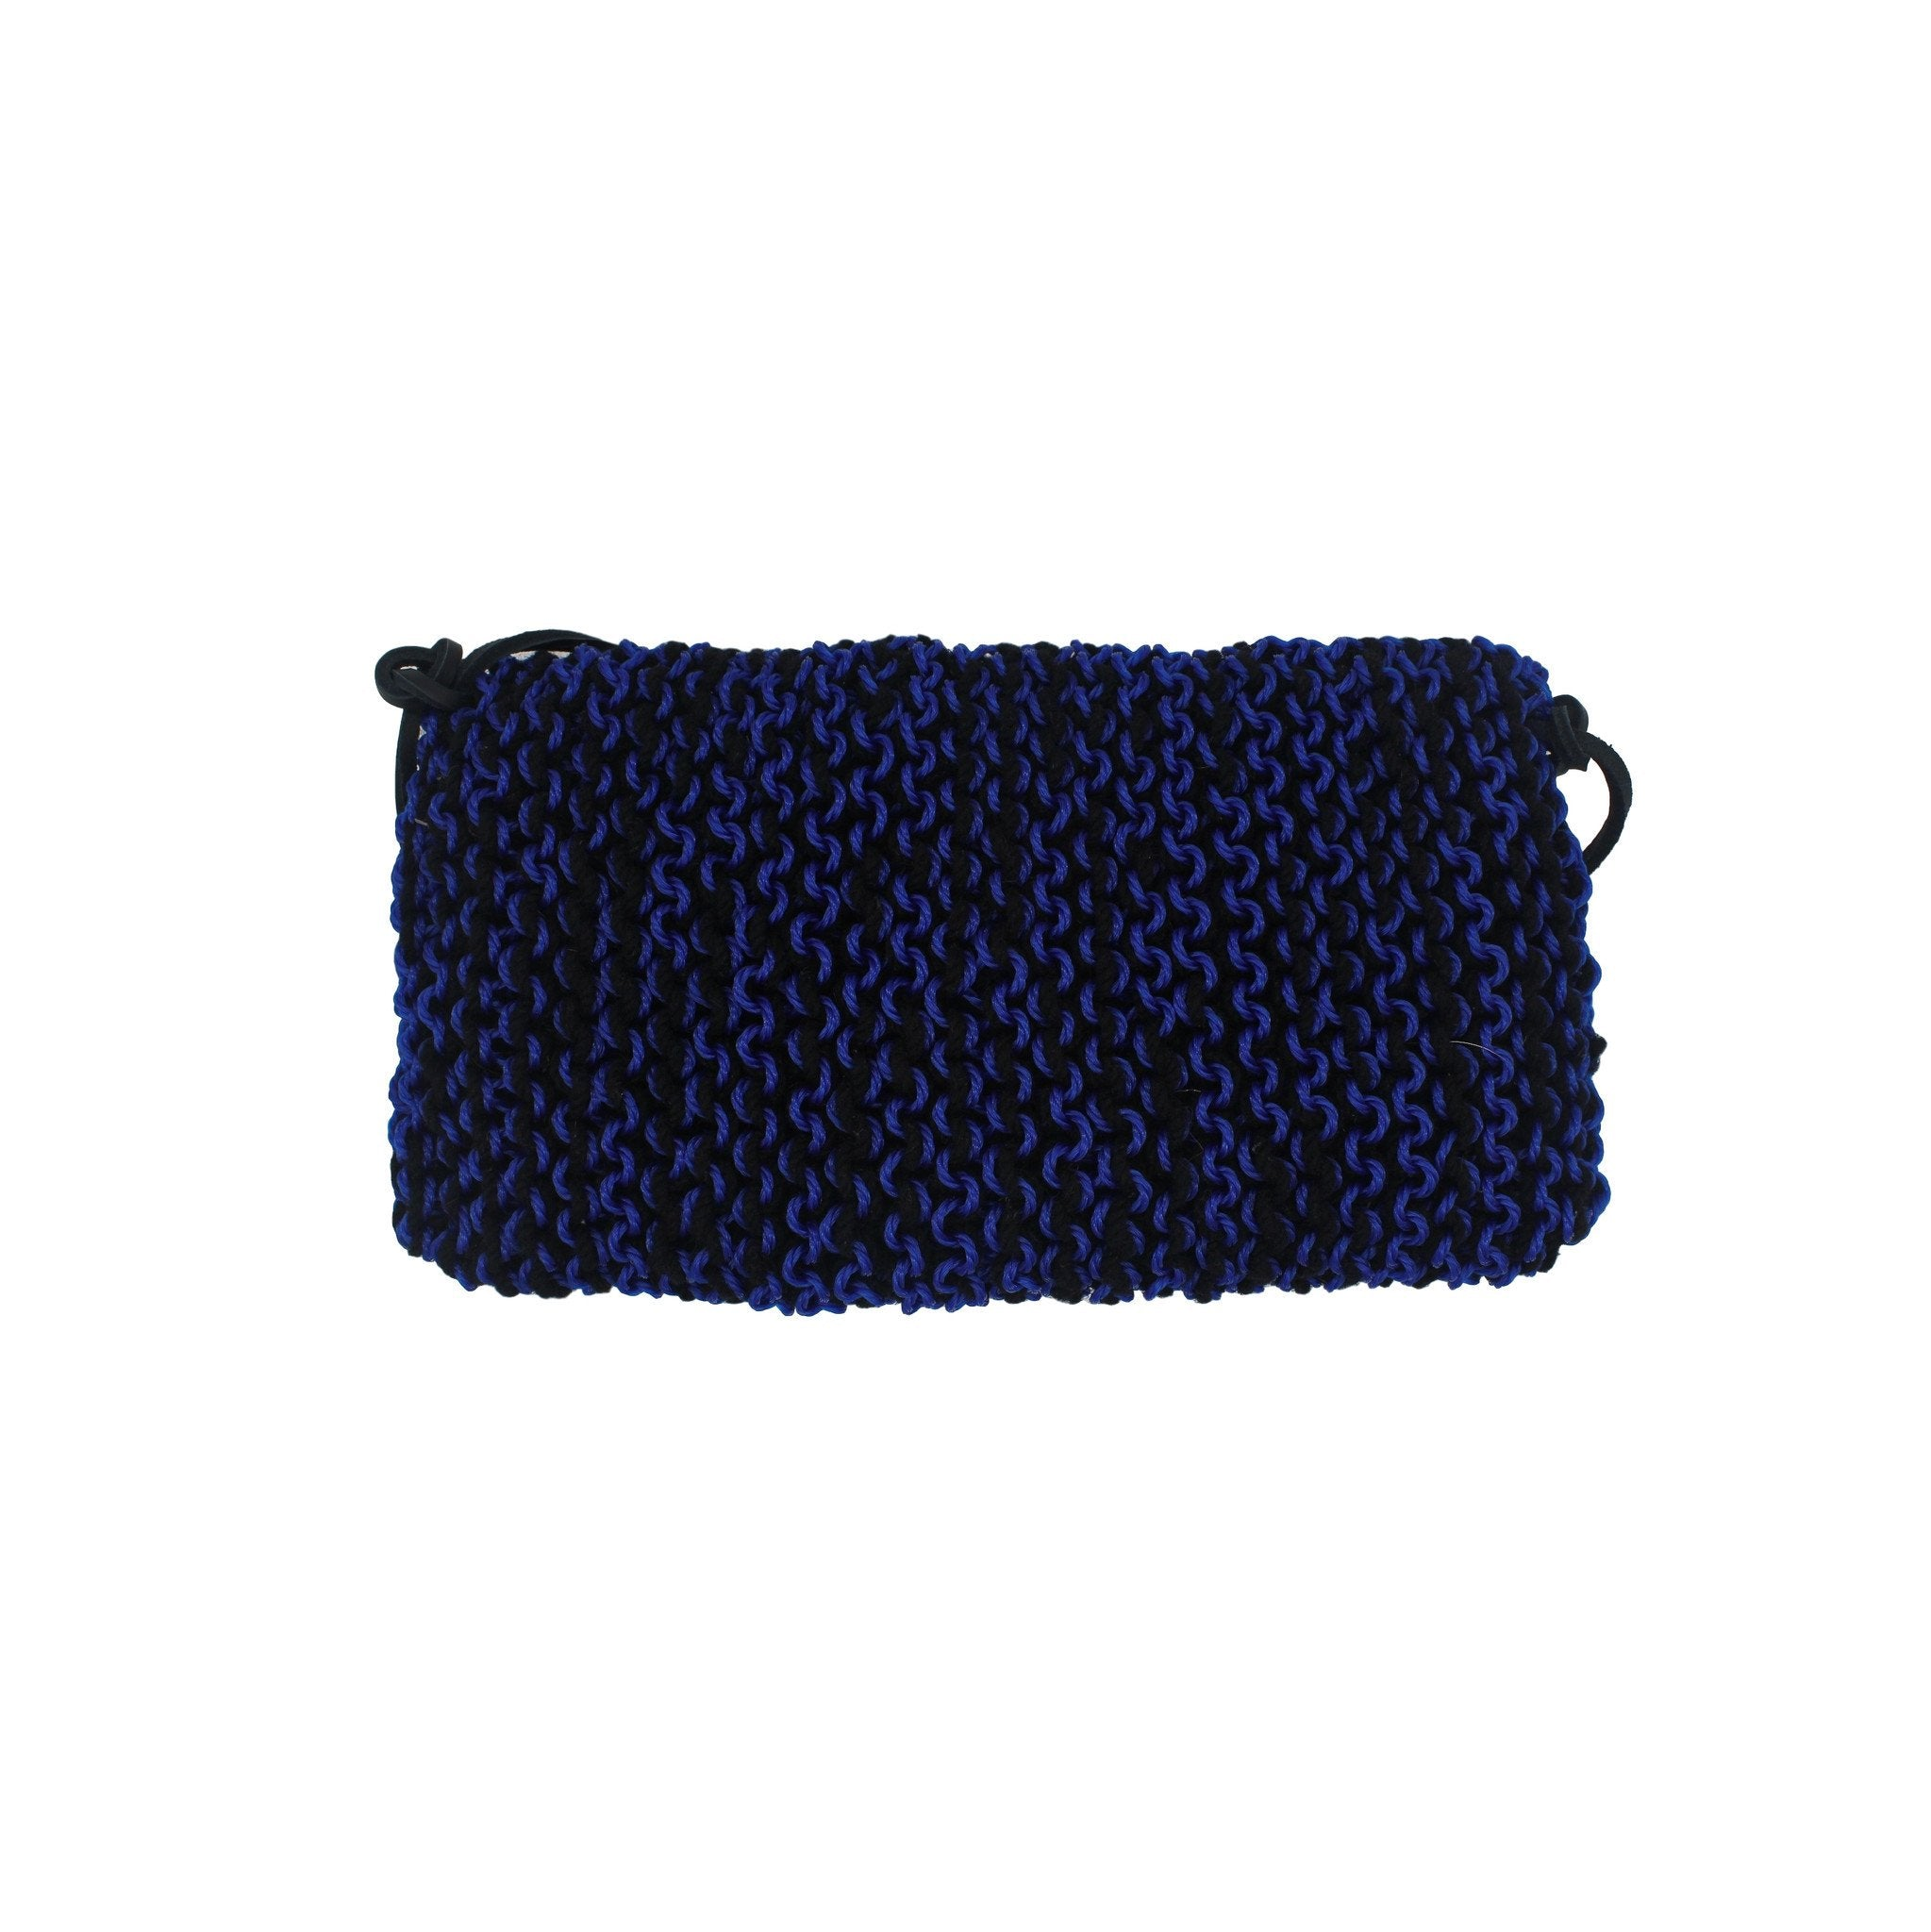 FISHNET CLUTCH - NOMADIC